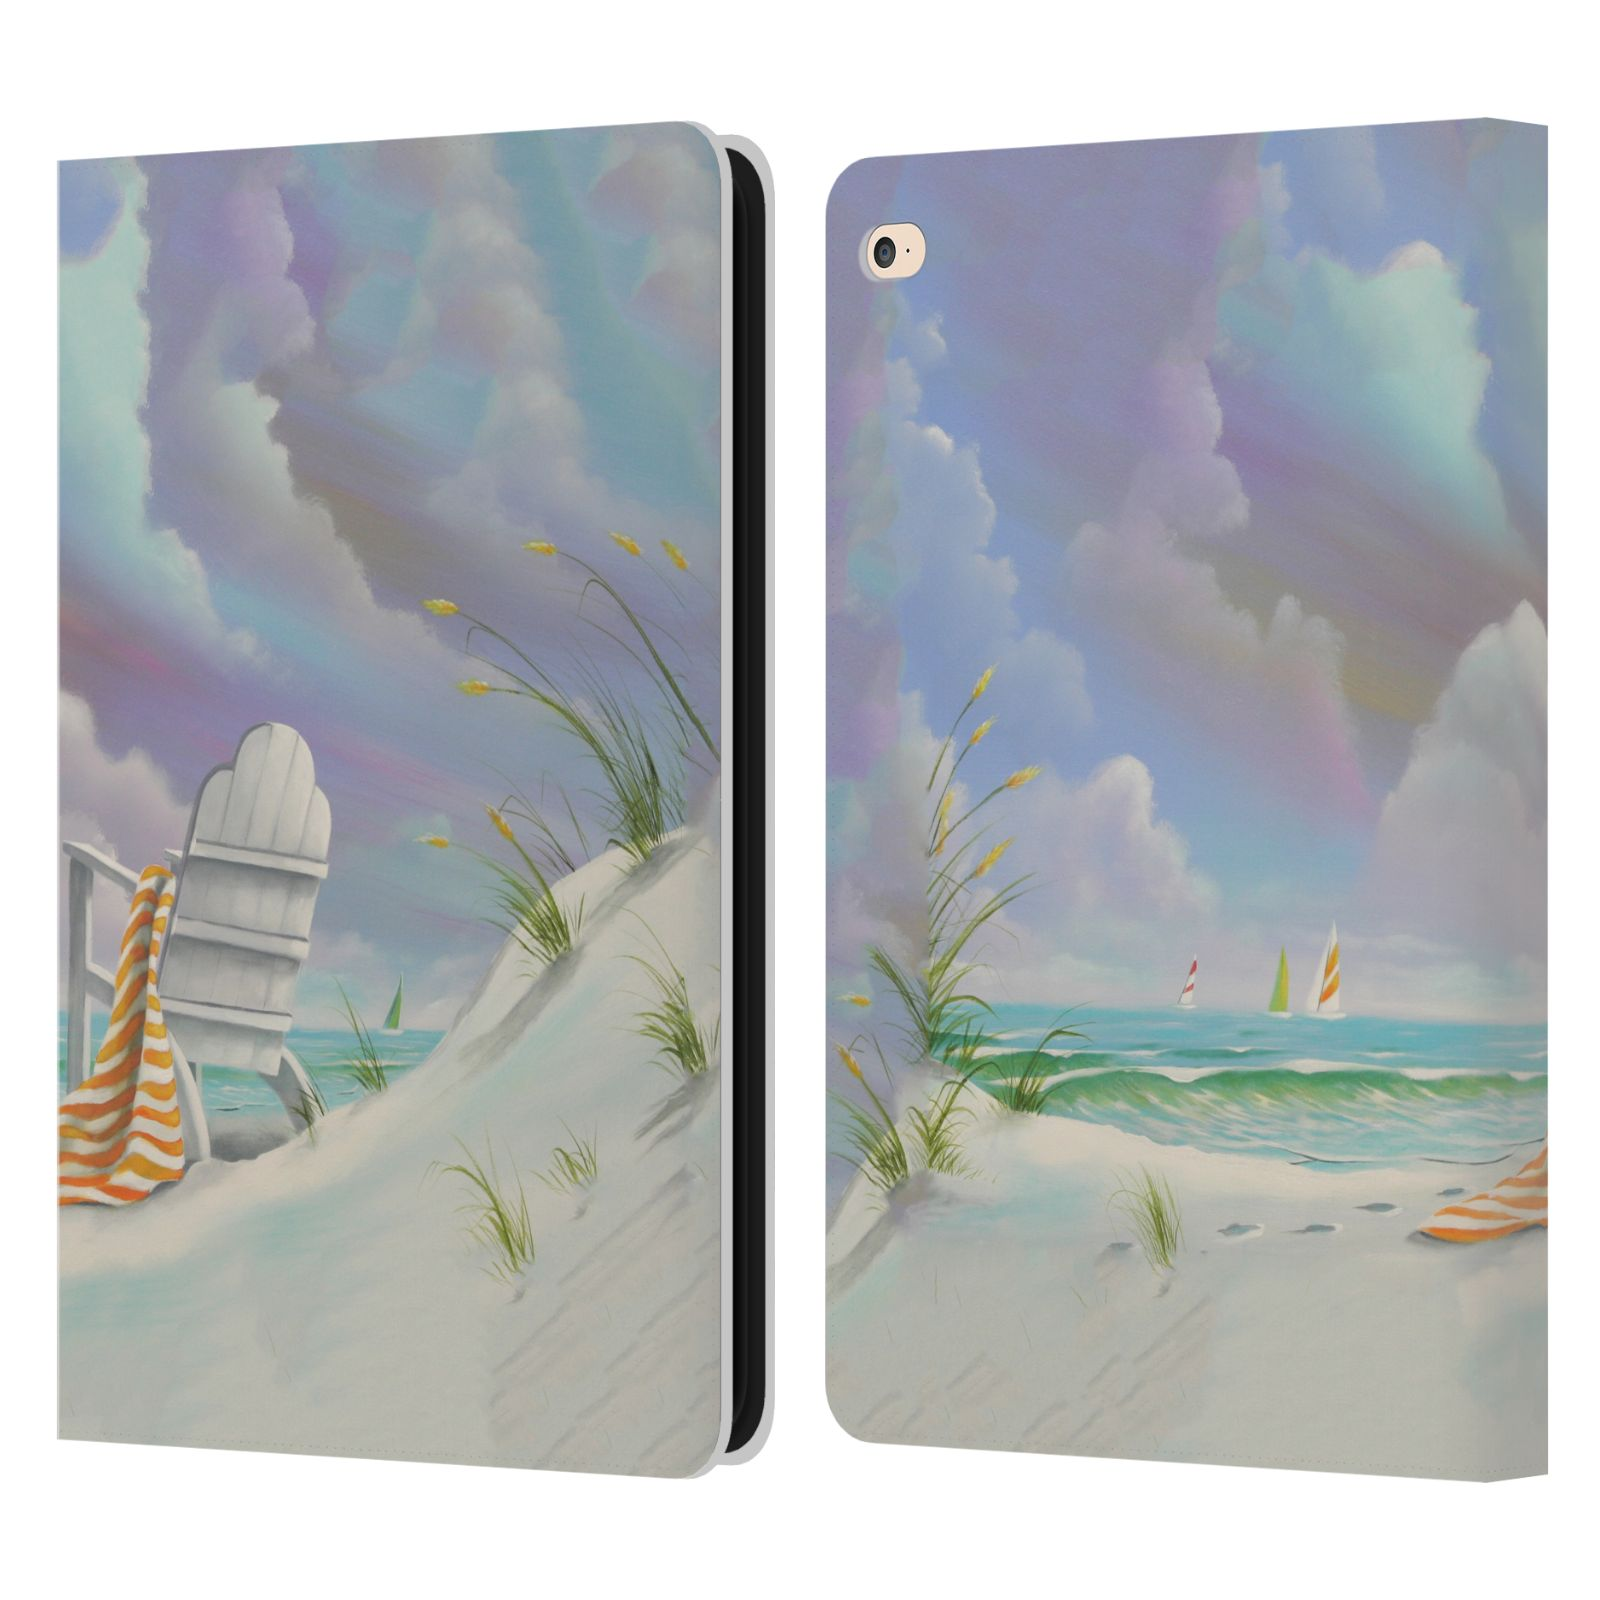 OFFICIAL-GENO-PEOPLES-ART-HOLIDAY-LEATHER-BOOK-WALLET-CASE-COVER-FOR-APPLE-iPAD